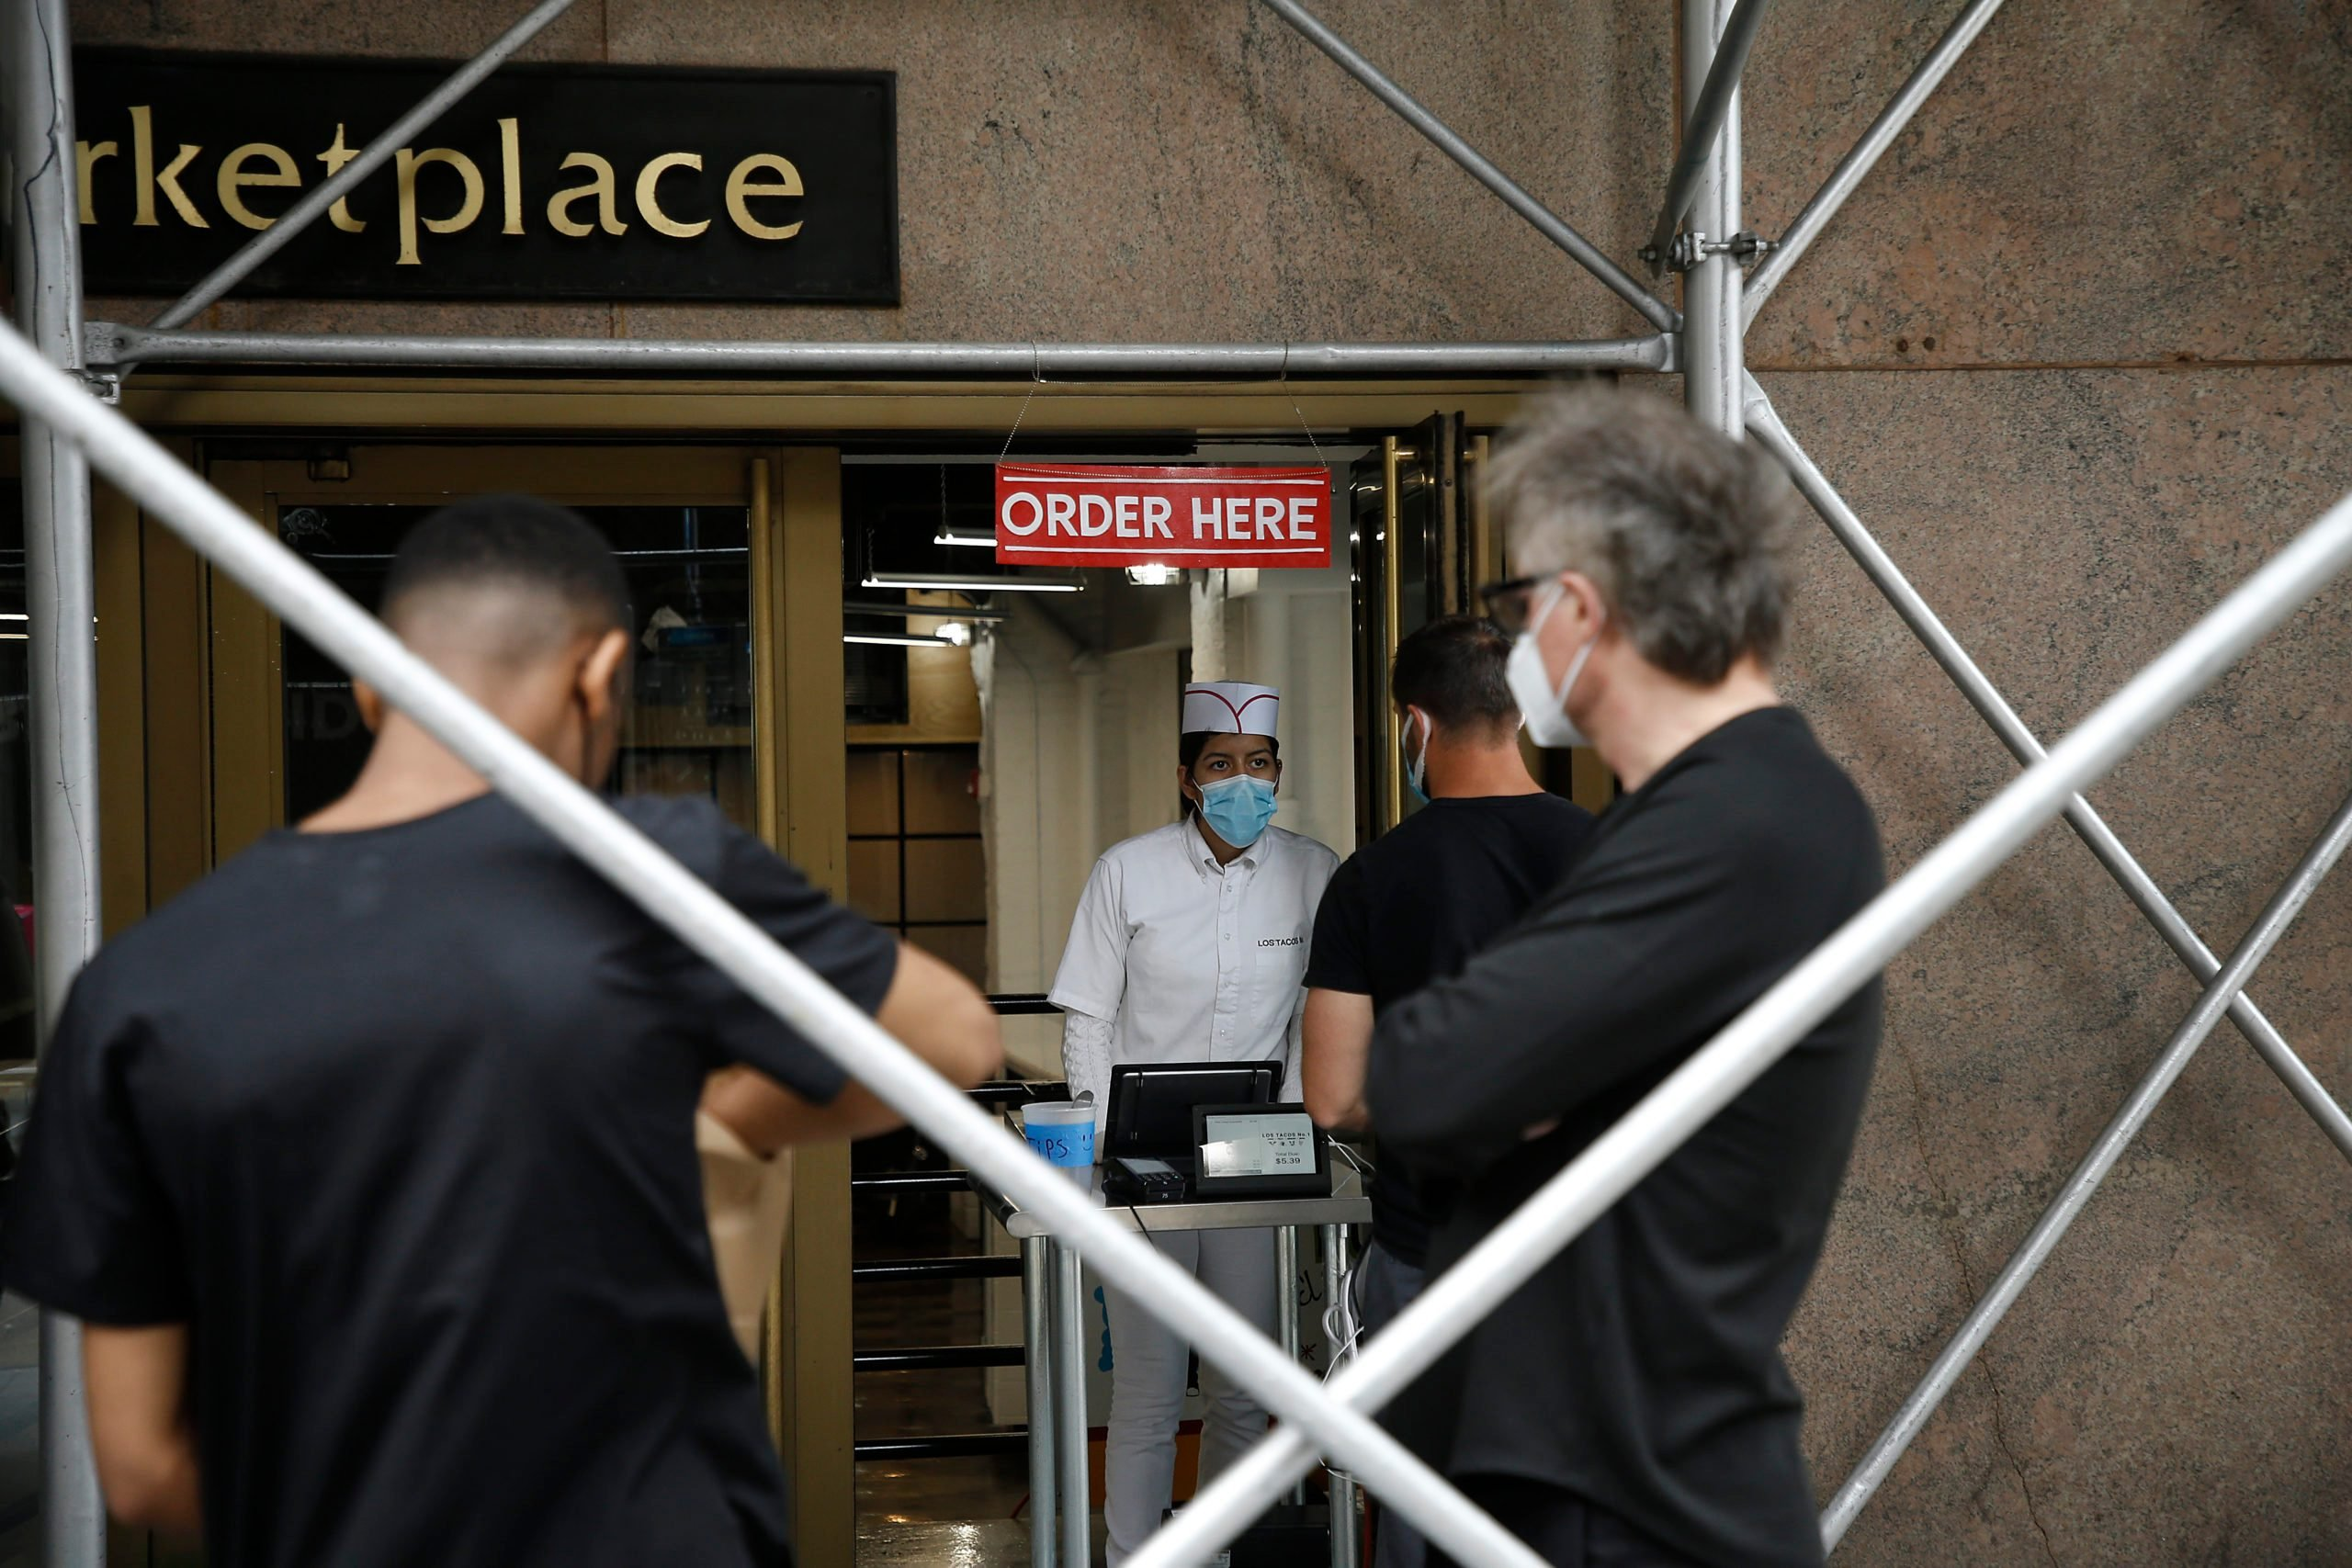 Phase One Of Economy Reopening In New York